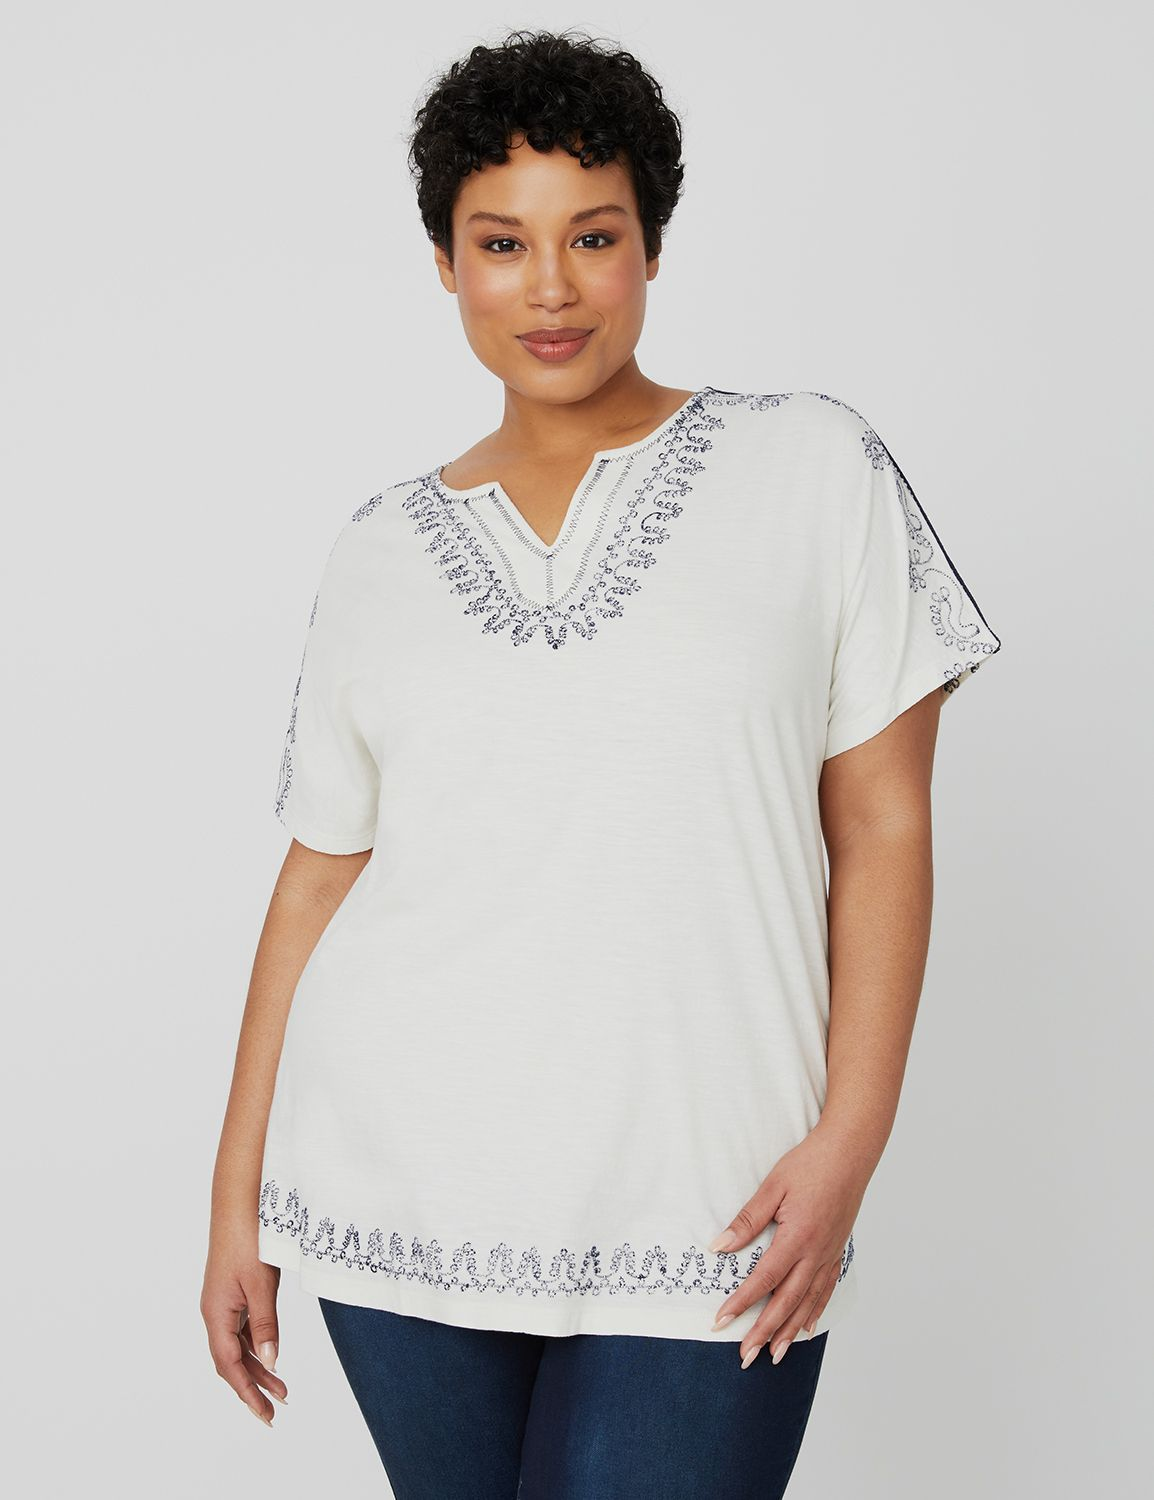 Embroidered Melody Top 1089840 EMBROIDERED SPLIT NECK MP-300099853